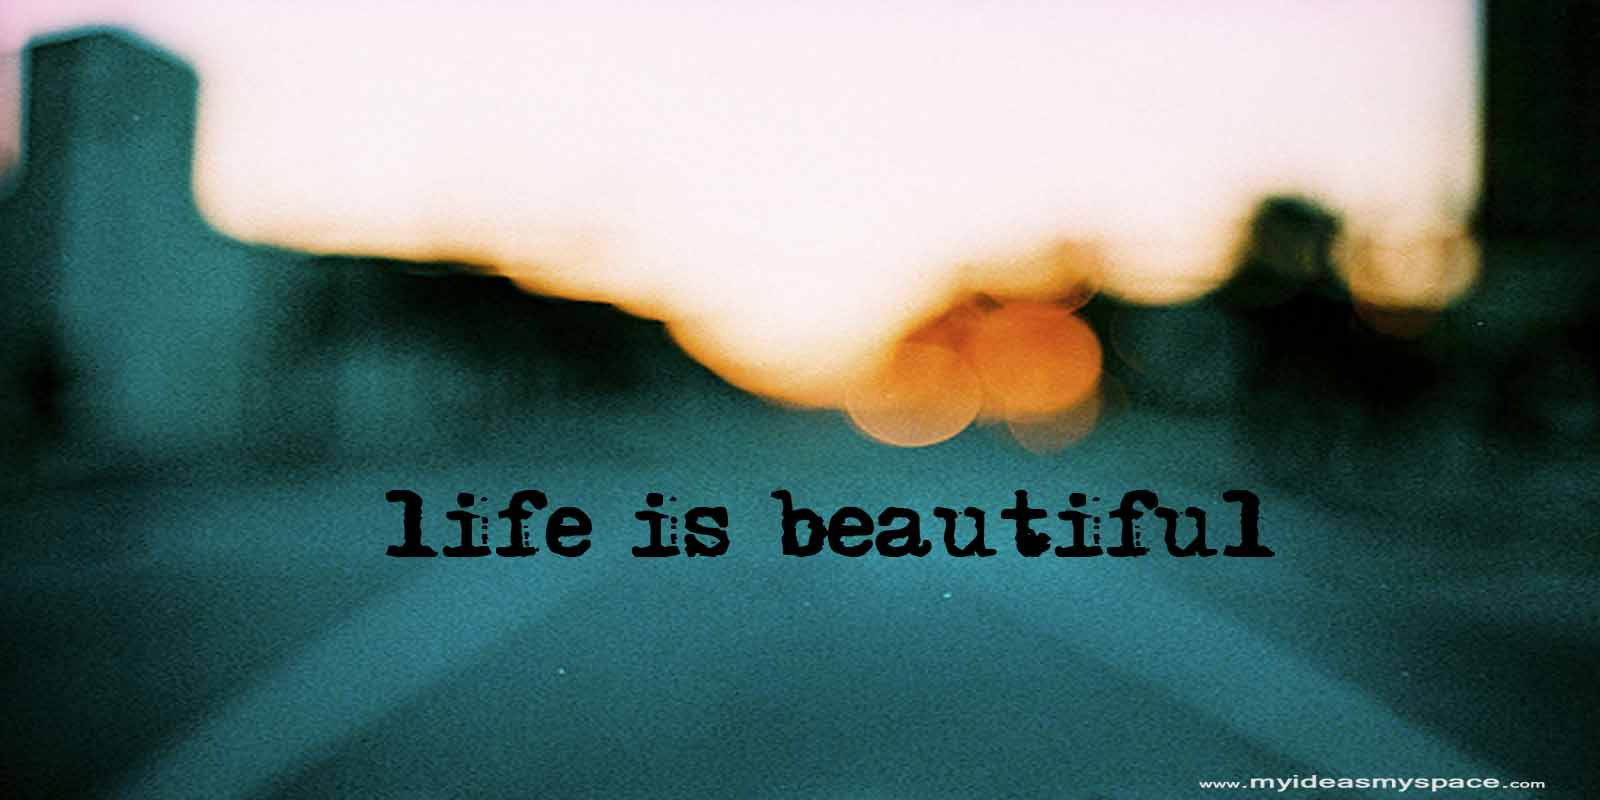 Life Is Beautiful Quotes Nice Quotes On Life & Love Life Is Beautiful Love It & Live It